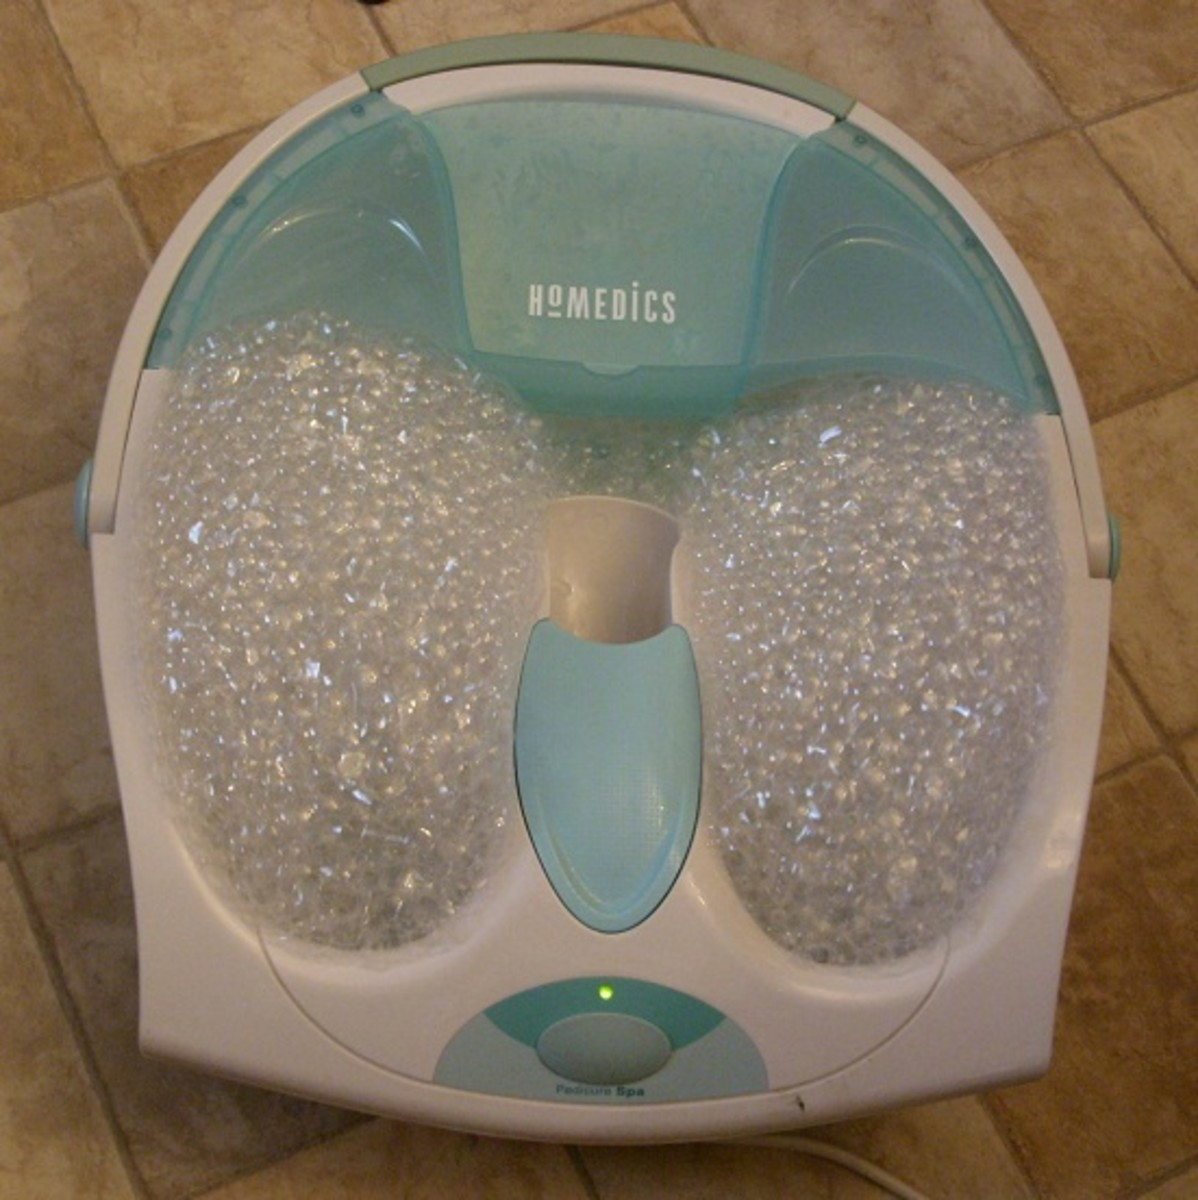 The Pedicure Tool is used with the Pedicure Spa.